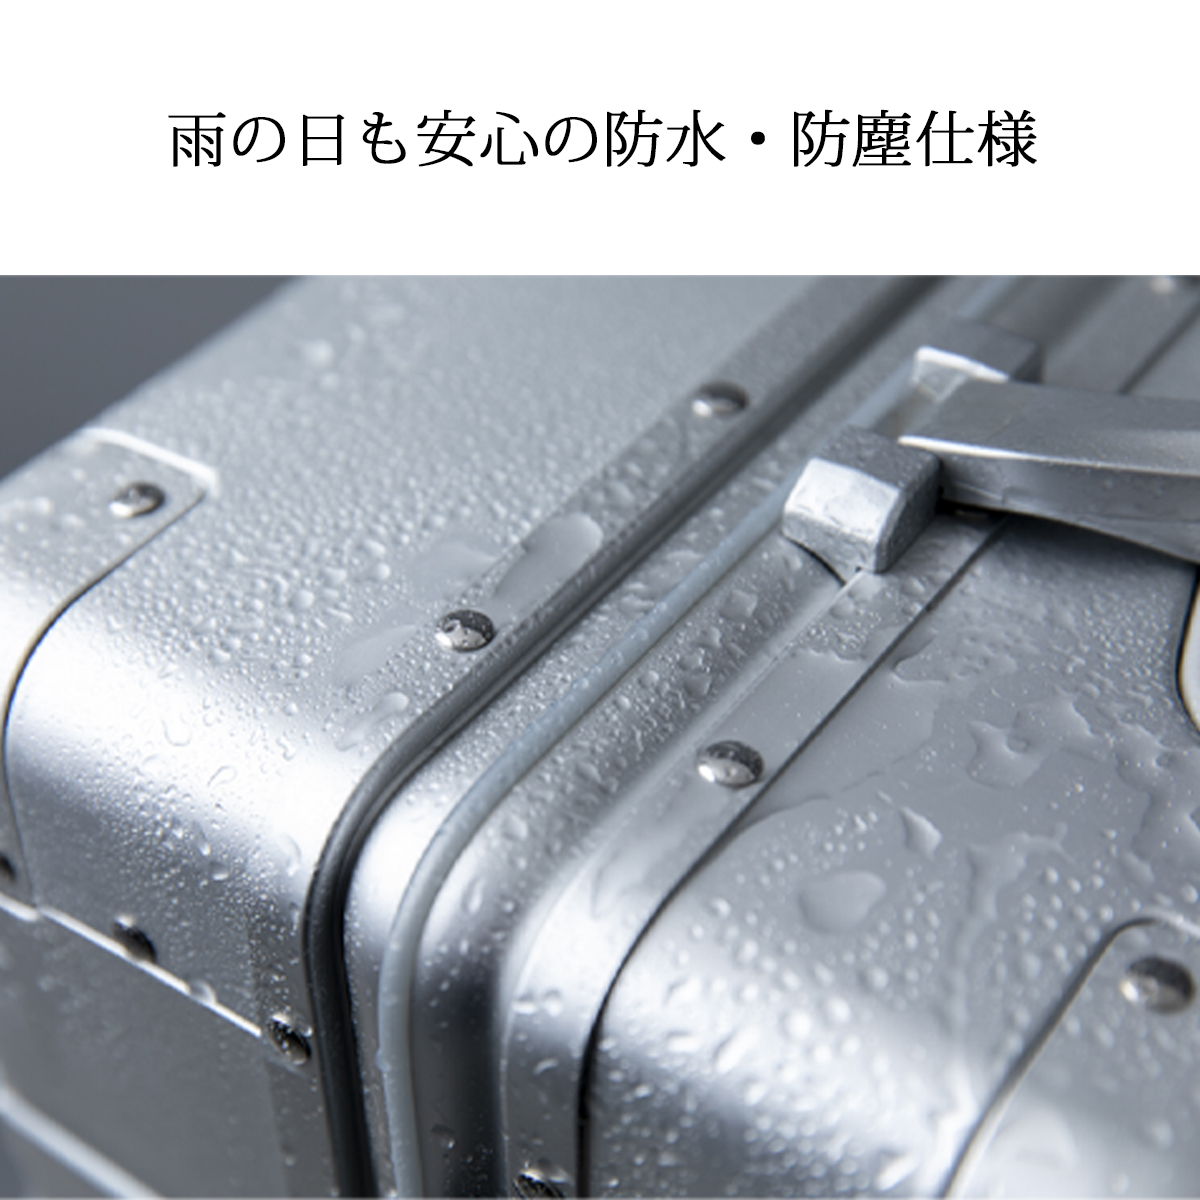 Carry One (指紋認証ロック解除機能付き ワンタッチ開閉スーツケース)(機内持ち込みサイズ)